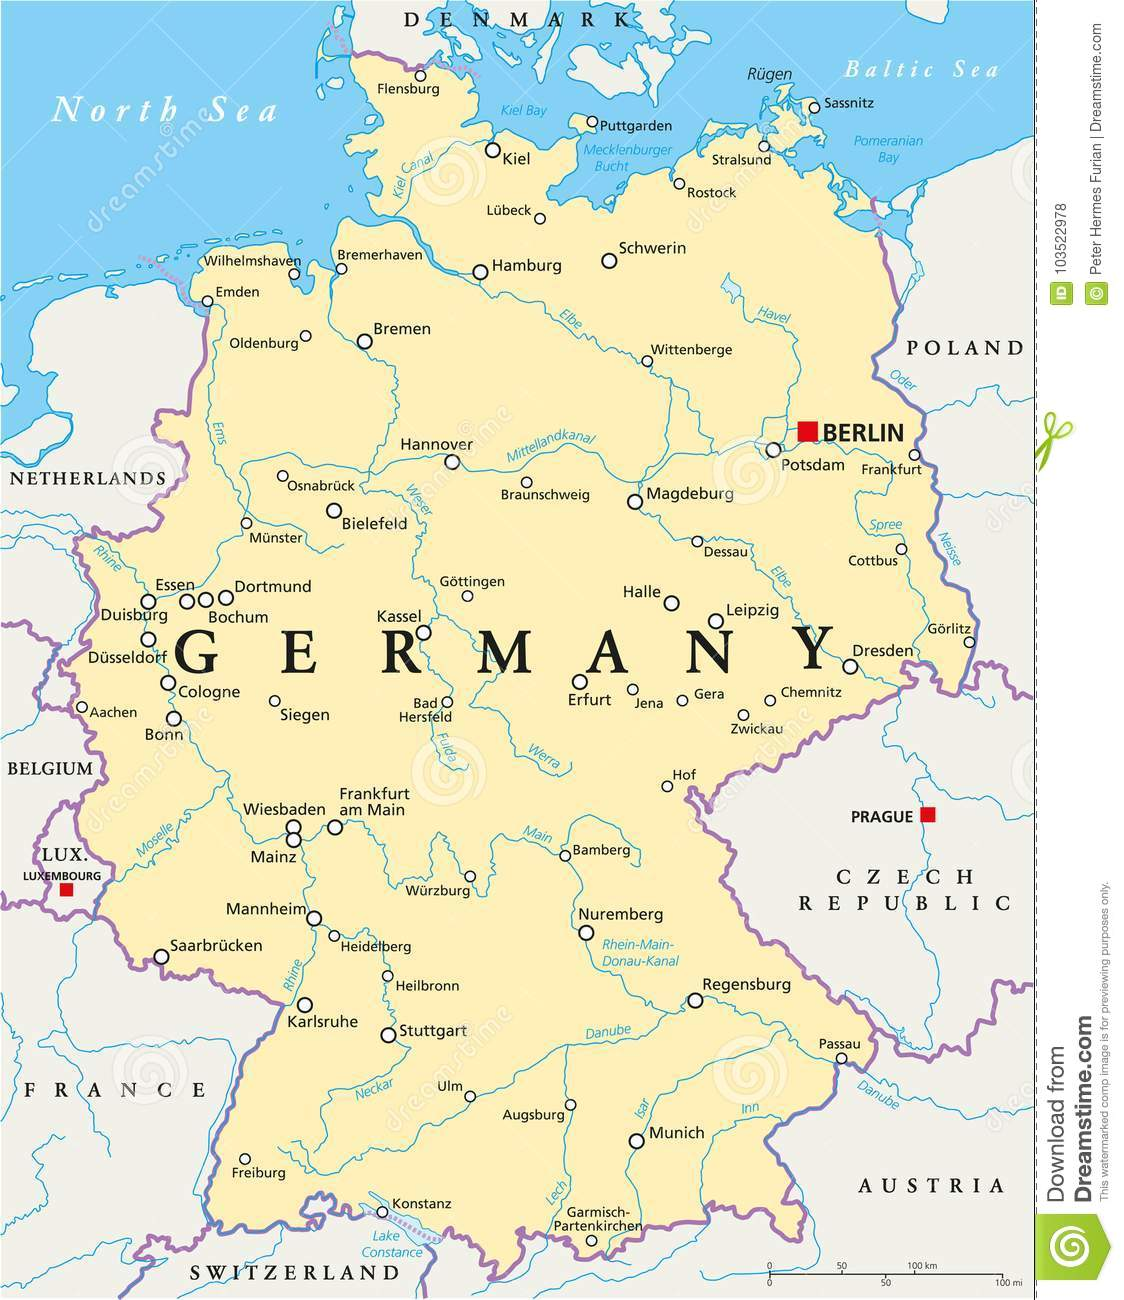 Berlin Map Of Germany.Germany Political Map Stock Vector Illustration Of Geography